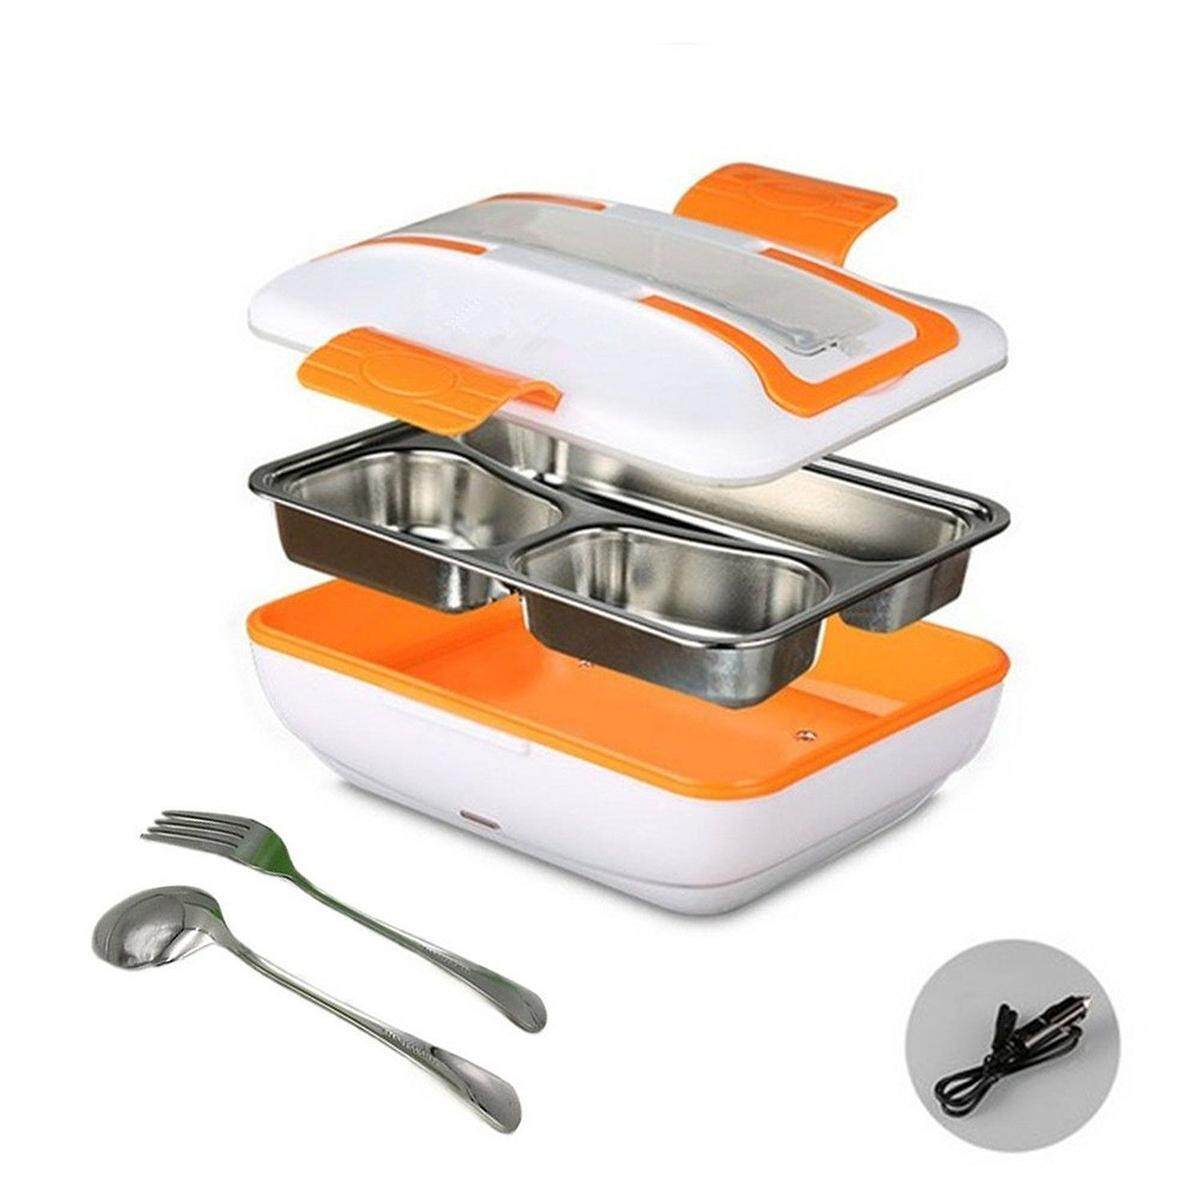 Portable Car Truck Electric Heating Lunch Box Food Warm Heater Storage Container - Intl By Five Star Store.